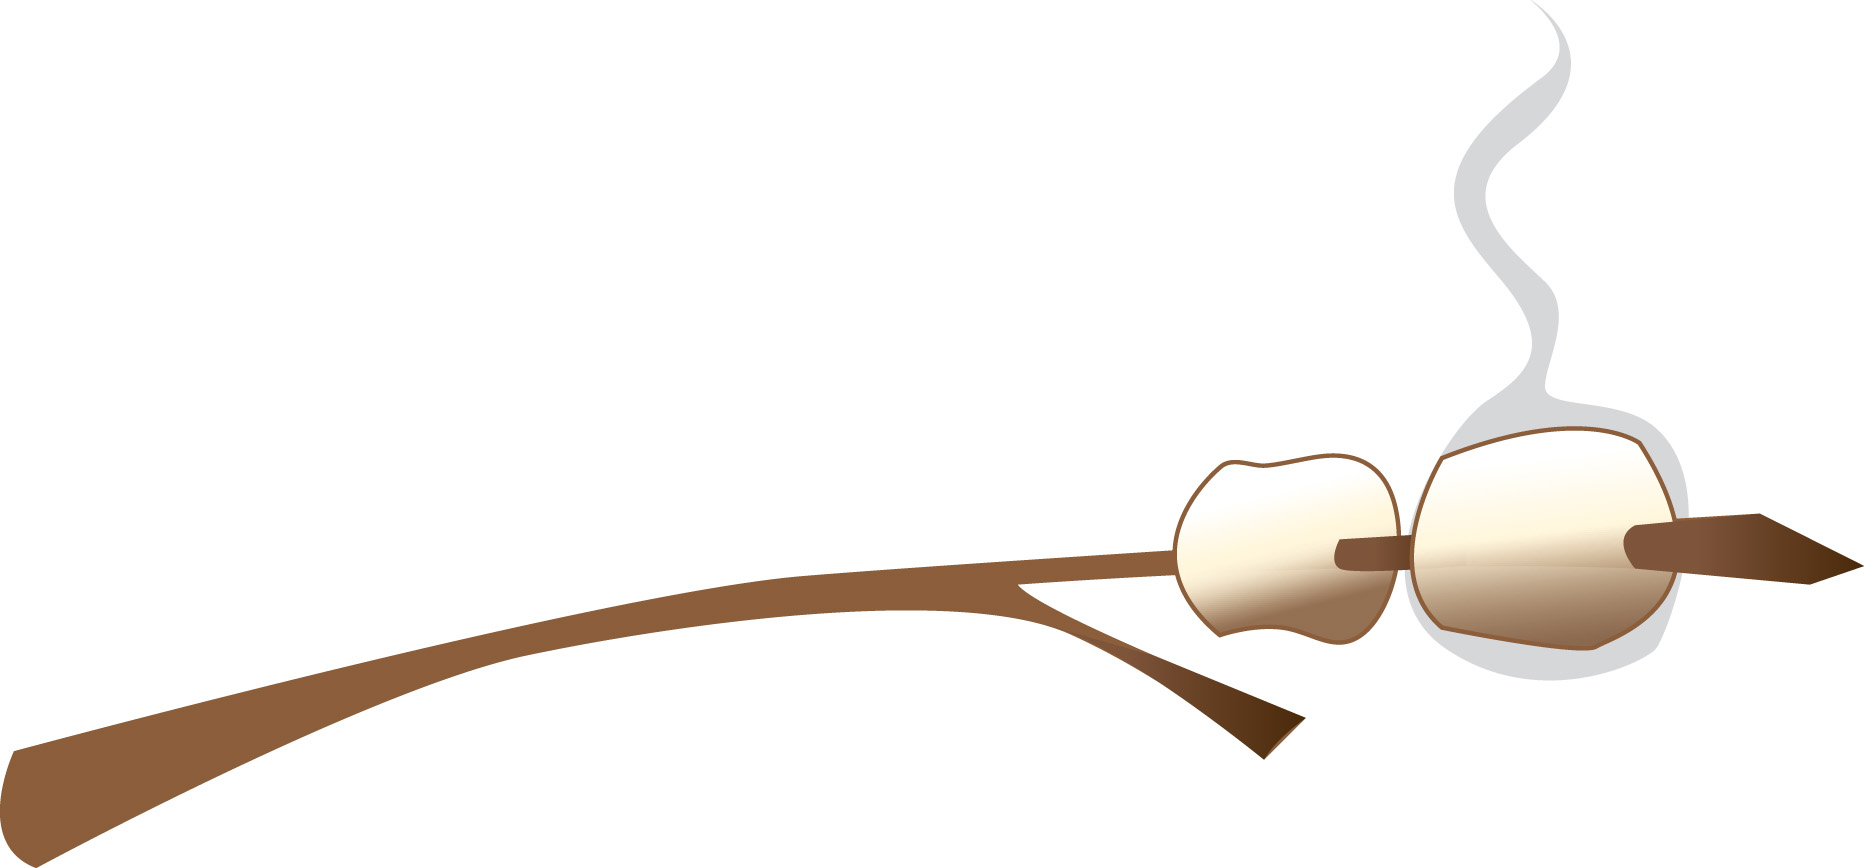 Marshmallow cute smore clipart